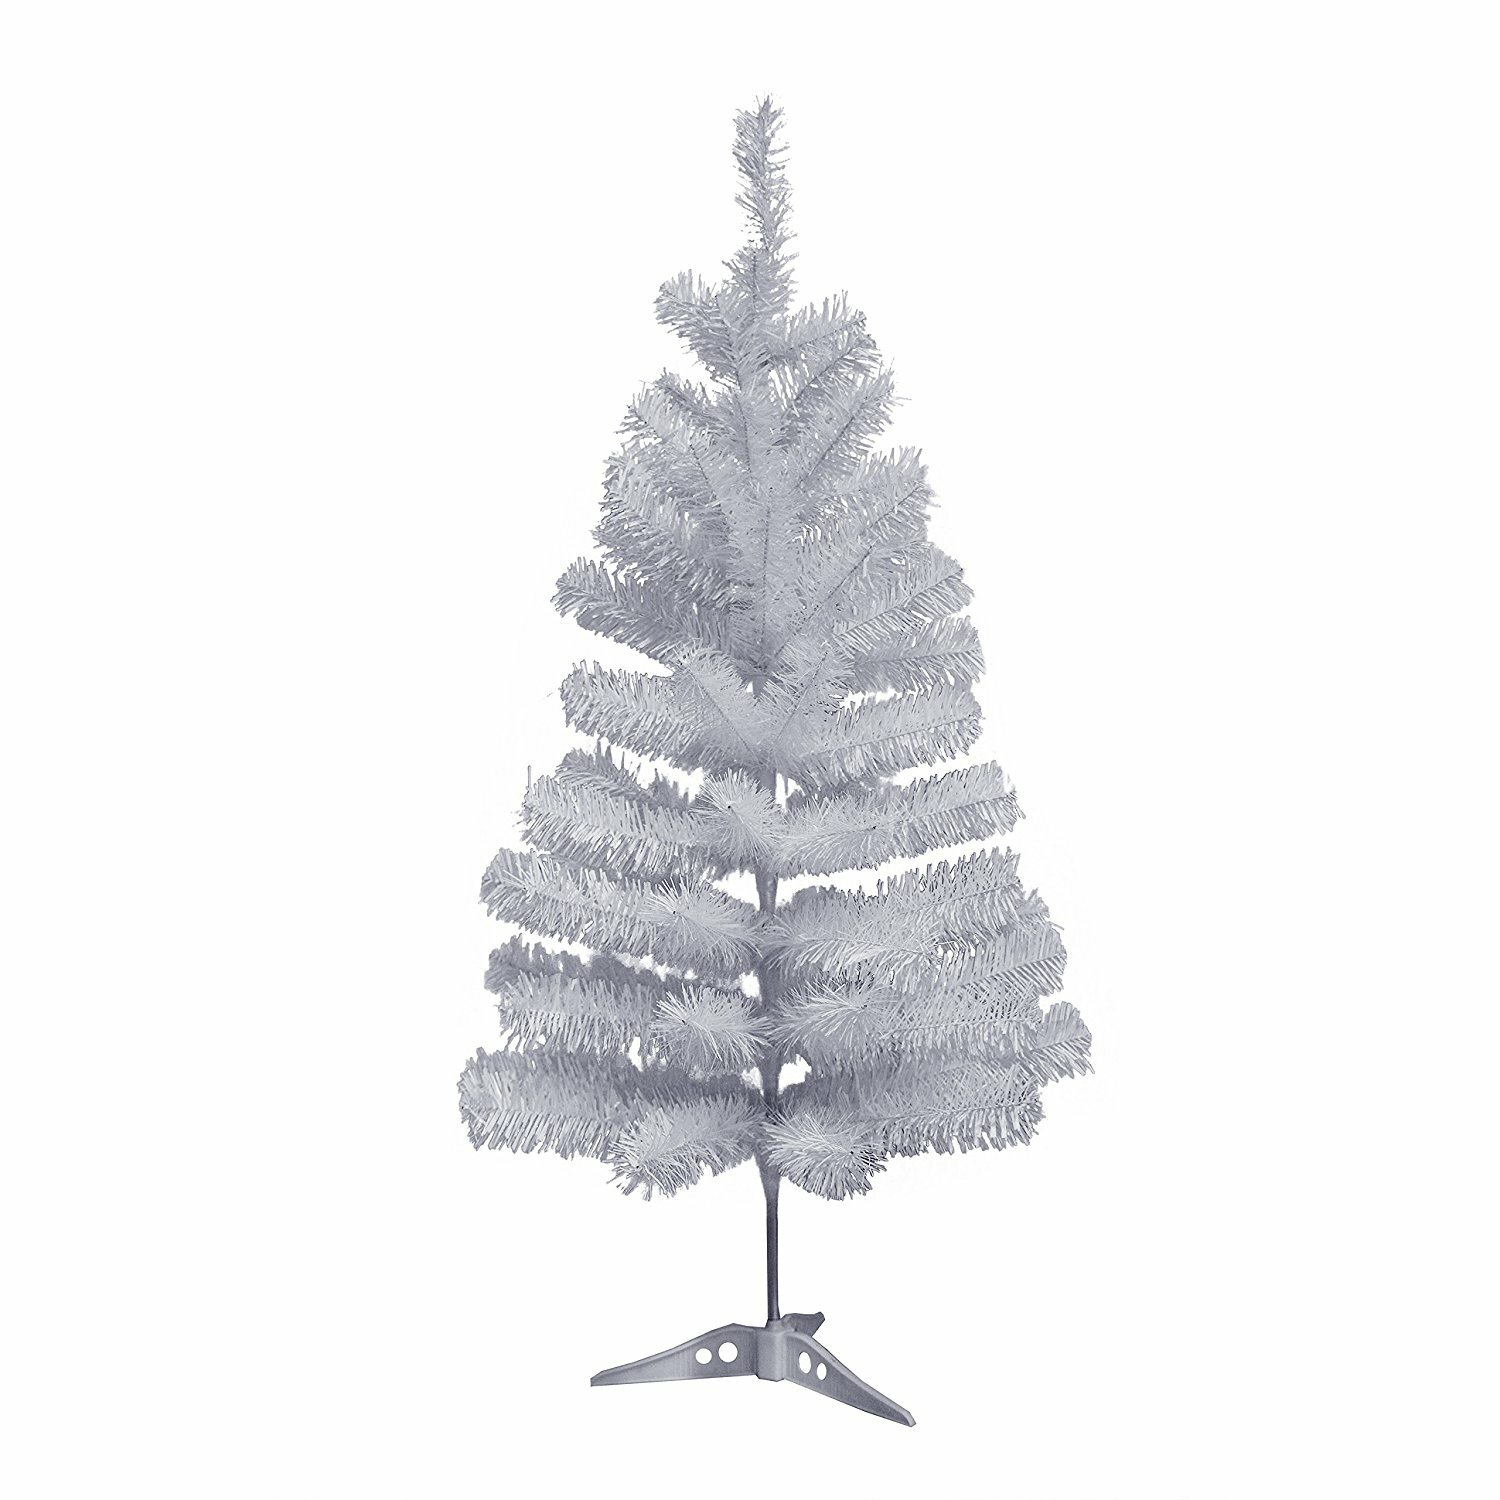 The Holiday Aisle Miniature 3 White Pine Artificial Christmas Tree With Plastic Stand Wayfair